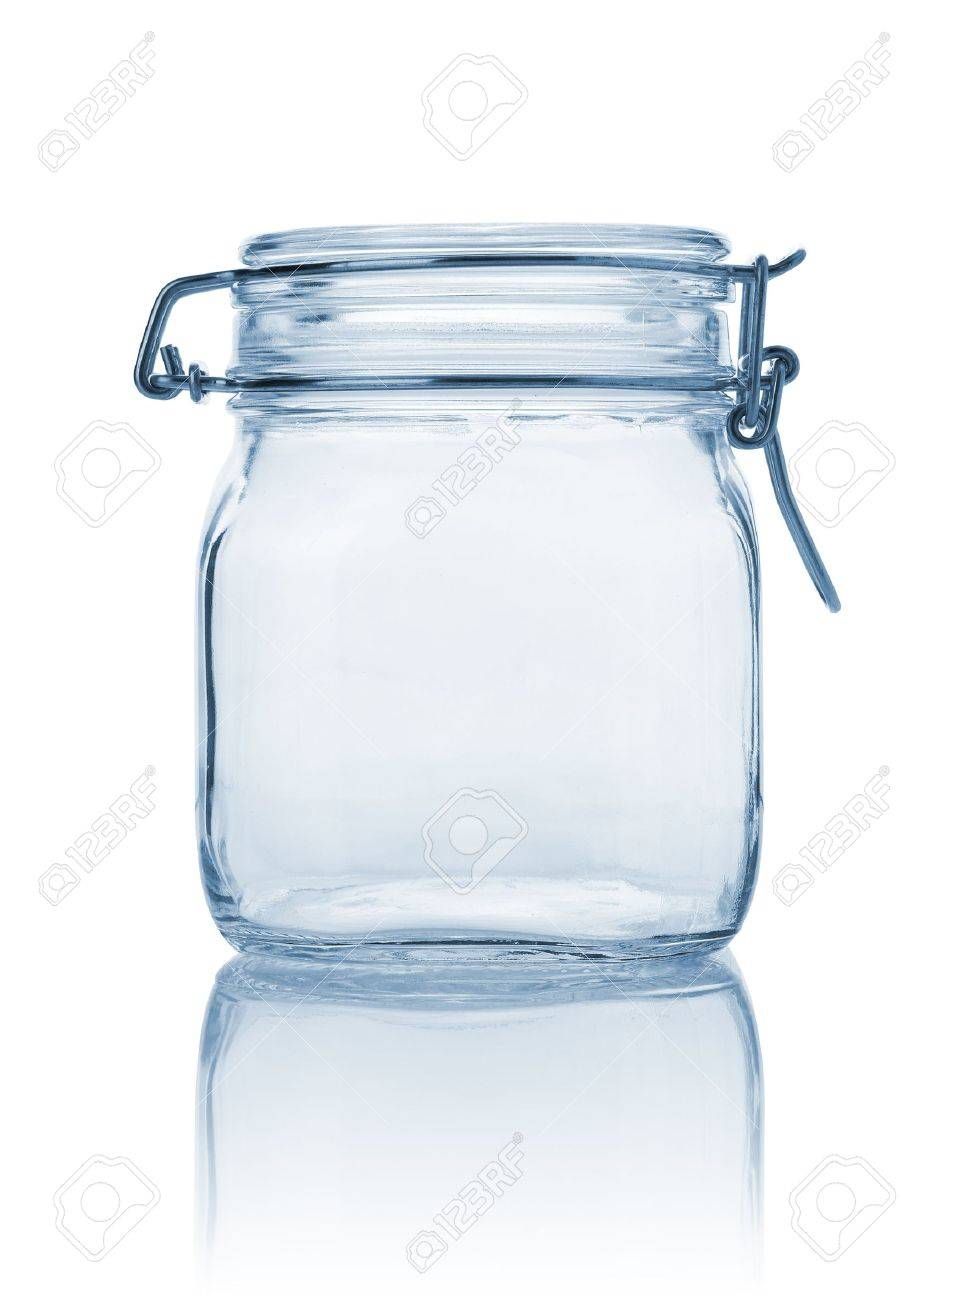 Closed empty glass jar, blue tonned and isolated on white - 13507941